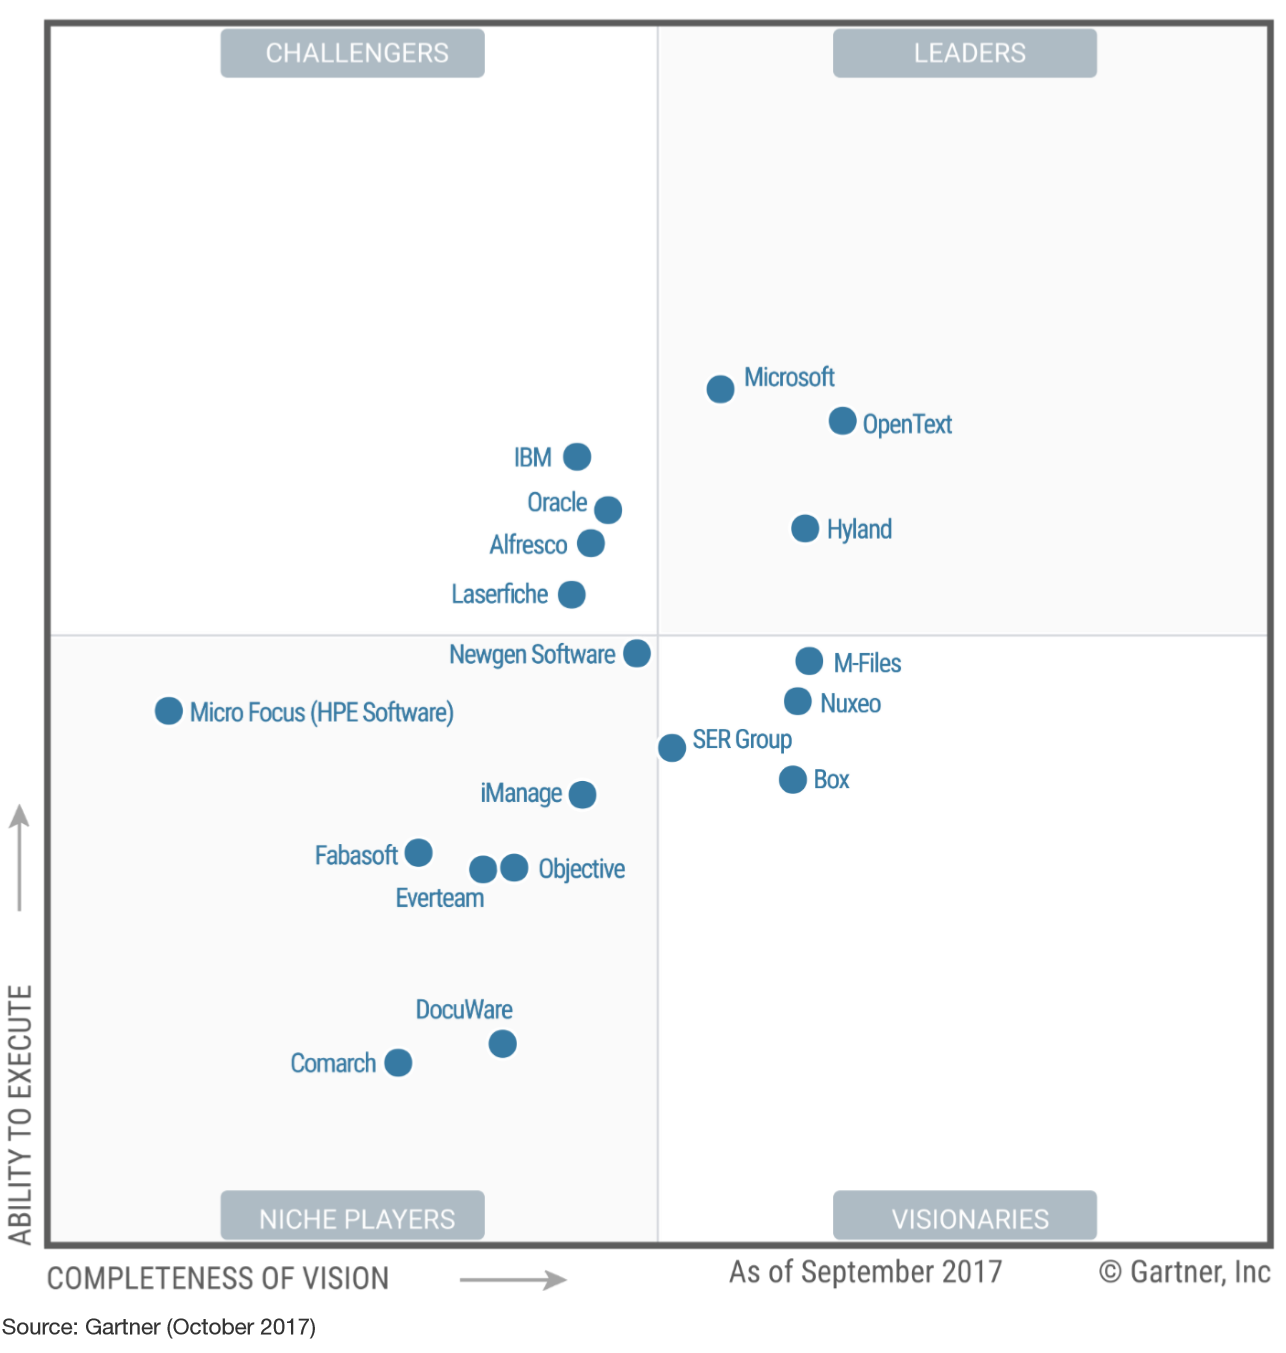 Image of the Gartner Magic Quadrant shows Microsoft as a Leader in Content Services for 2017.